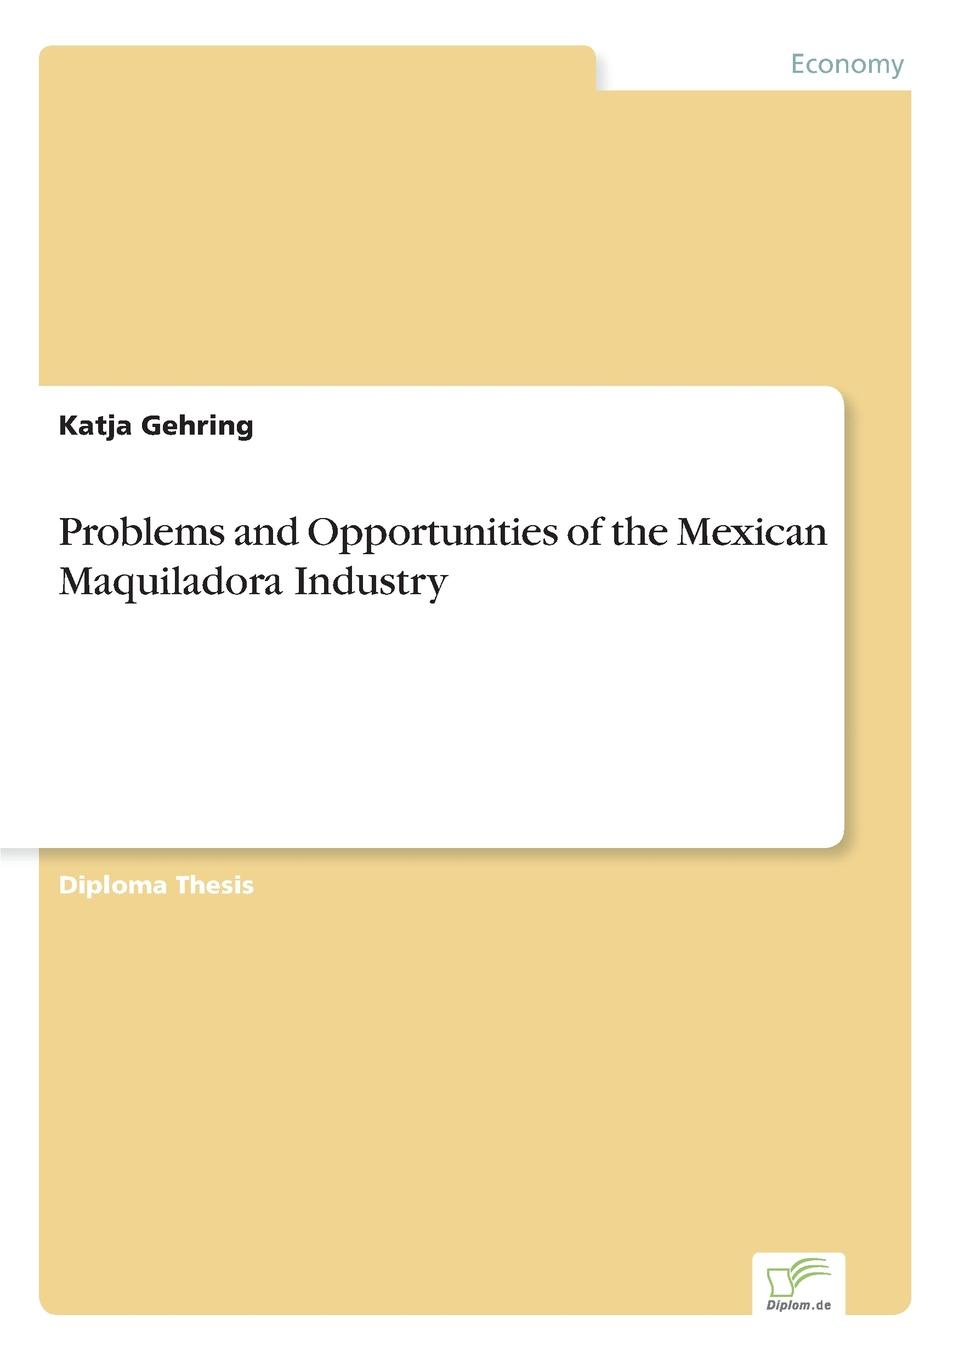 лучшая цена Katja Gehring Problems and Opportunities of the Mexican Maquiladora Industry